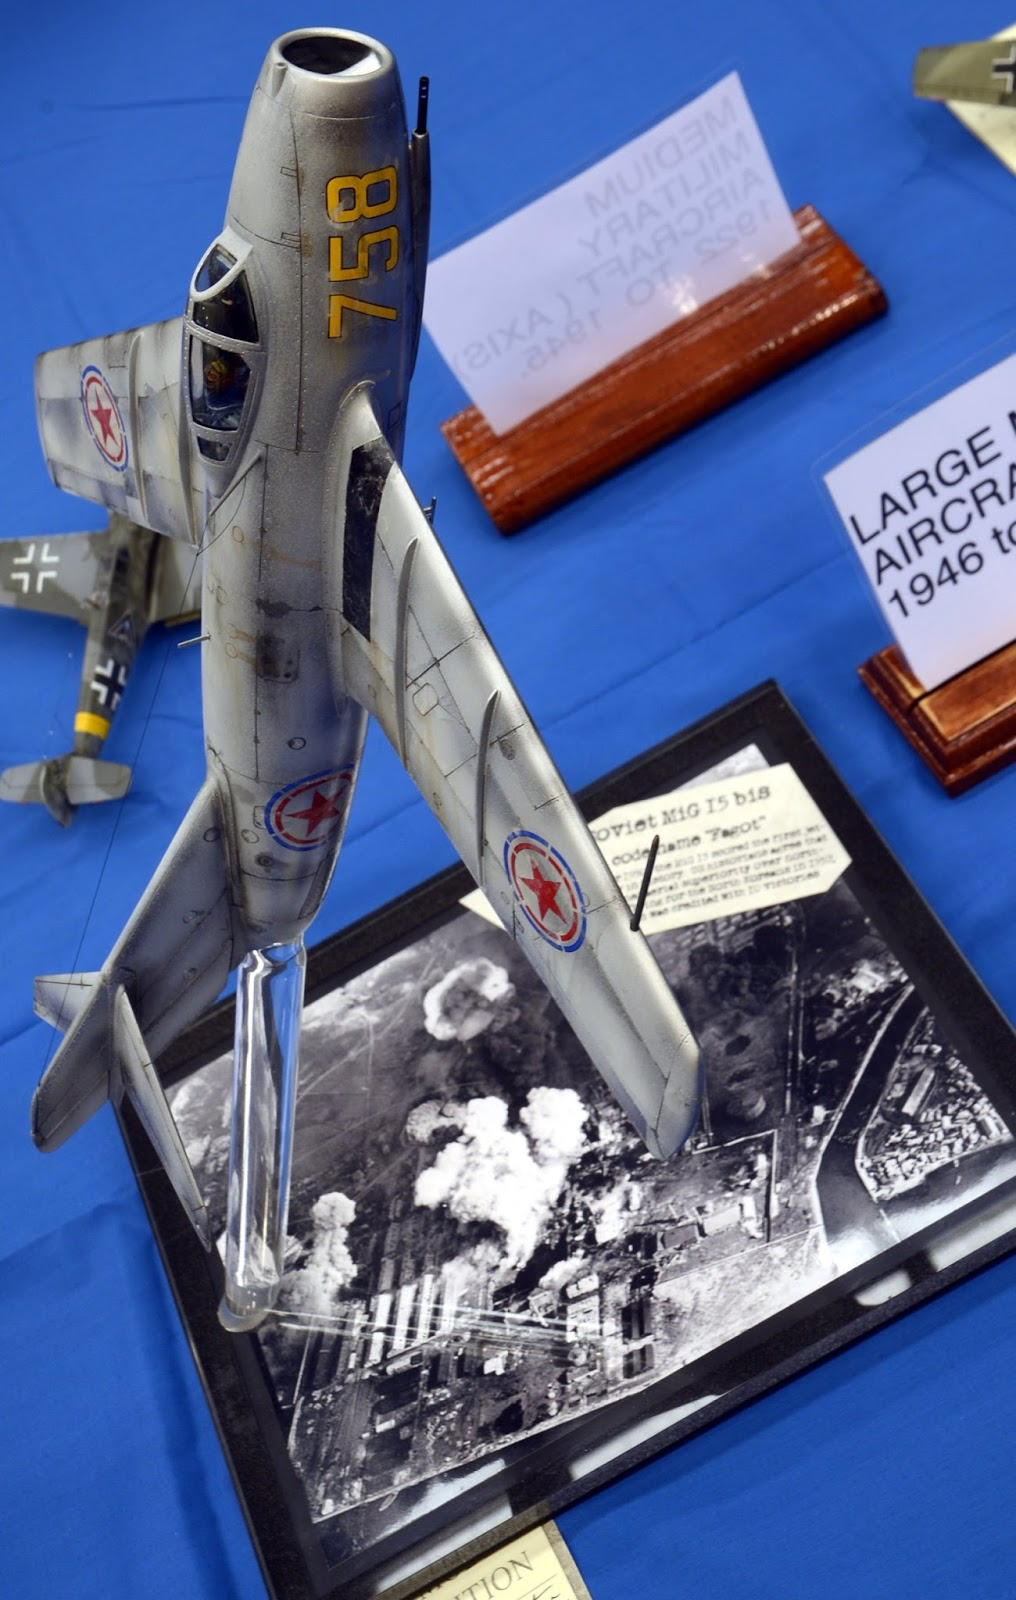 Illawarra Plastic Modellers' Association (IPMA) show galleries - Part II - Aircraft